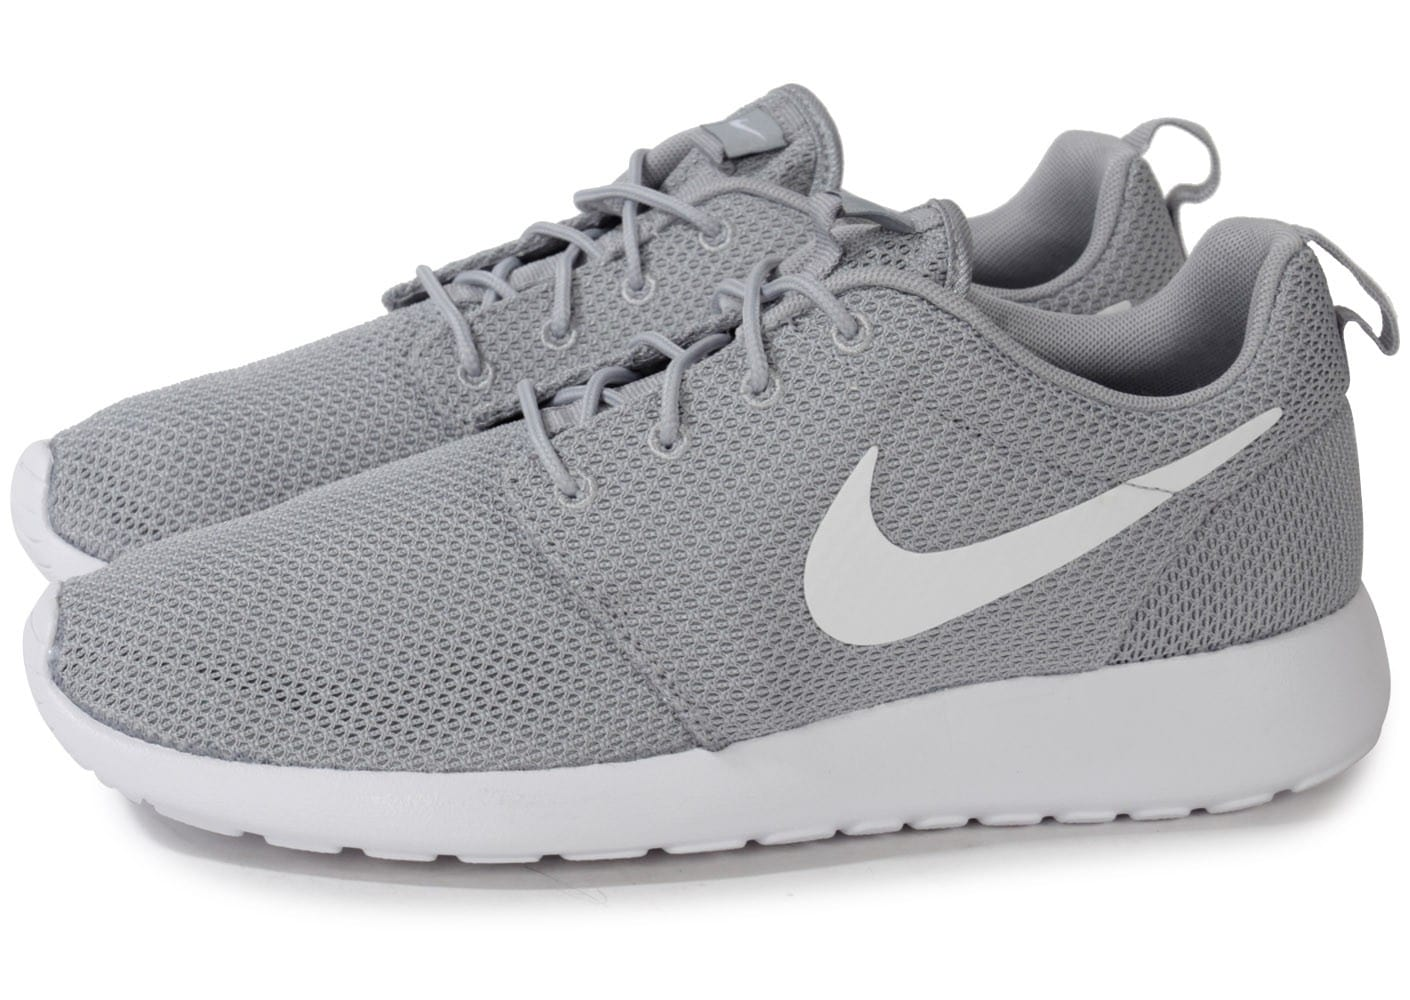 énorme réduction 137f2 9ebbf Nike Roshe Run grise - Chaussures Baskets homme - Chausport